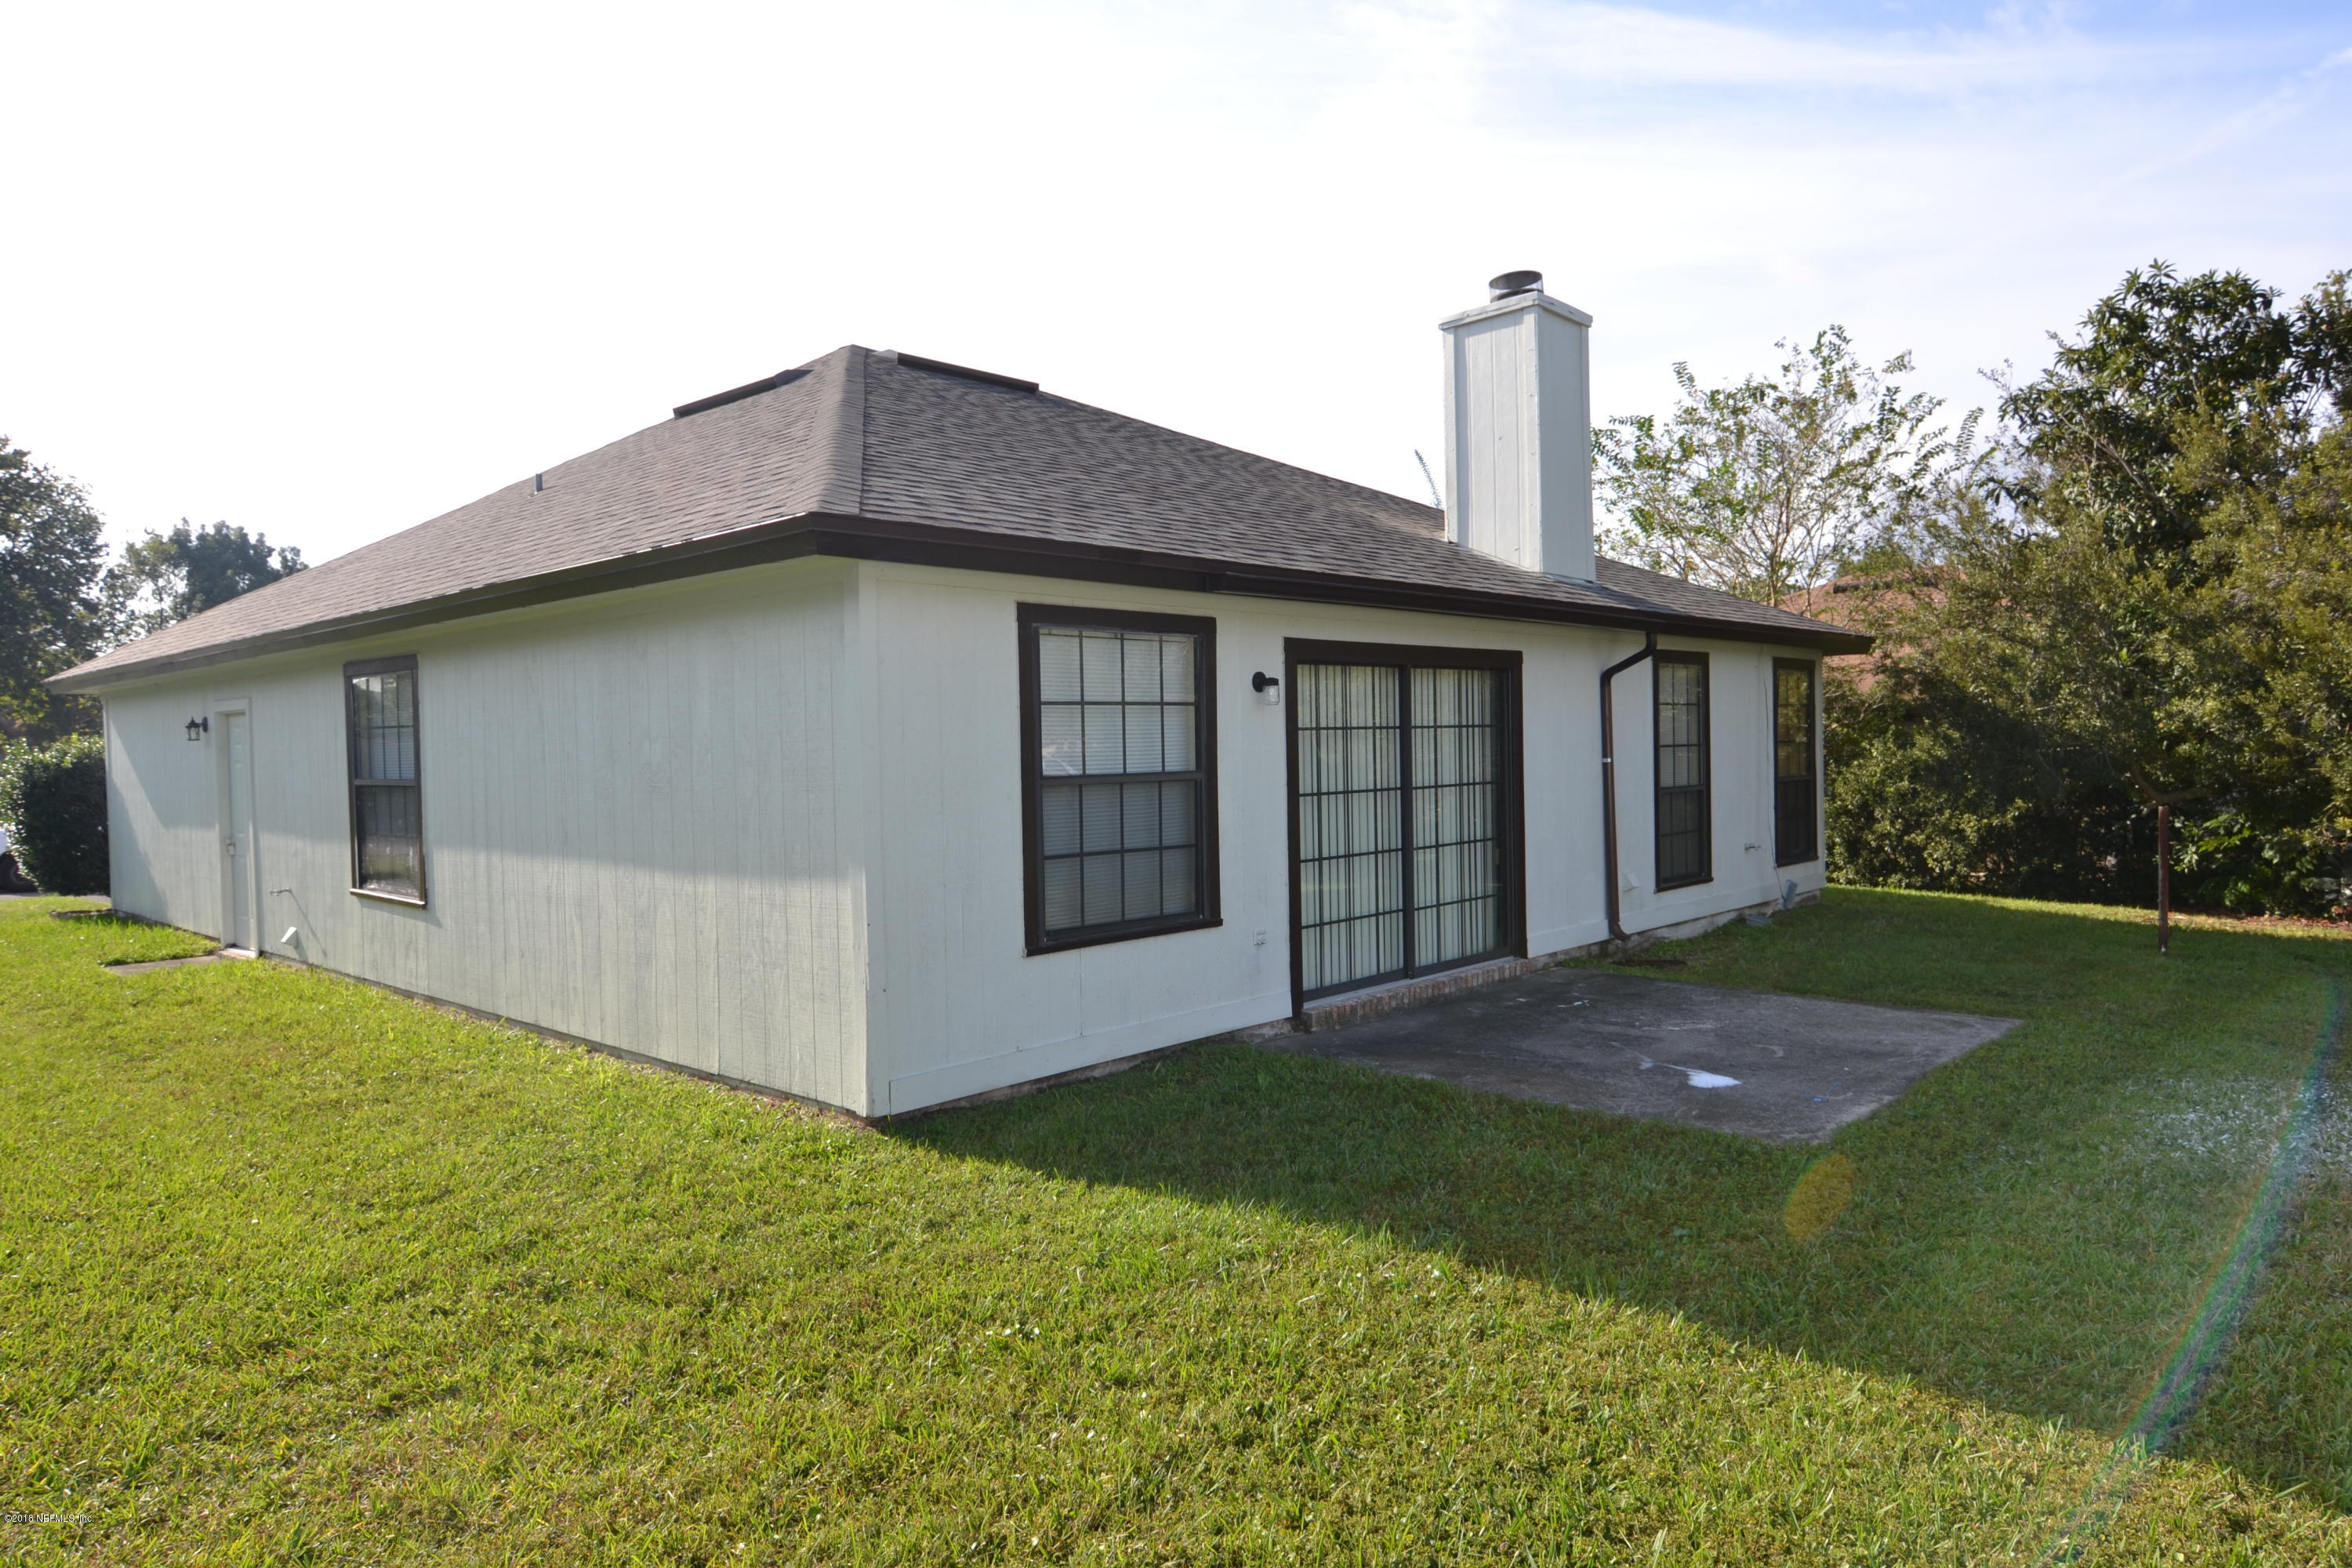 6640 RIPPLING WAVE, JACKSONVILLE, FLORIDA 32244, 3 Bedrooms Bedrooms, ,2 BathroomsBathrooms,Residential - single family,For sale,RIPPLING WAVE,964862